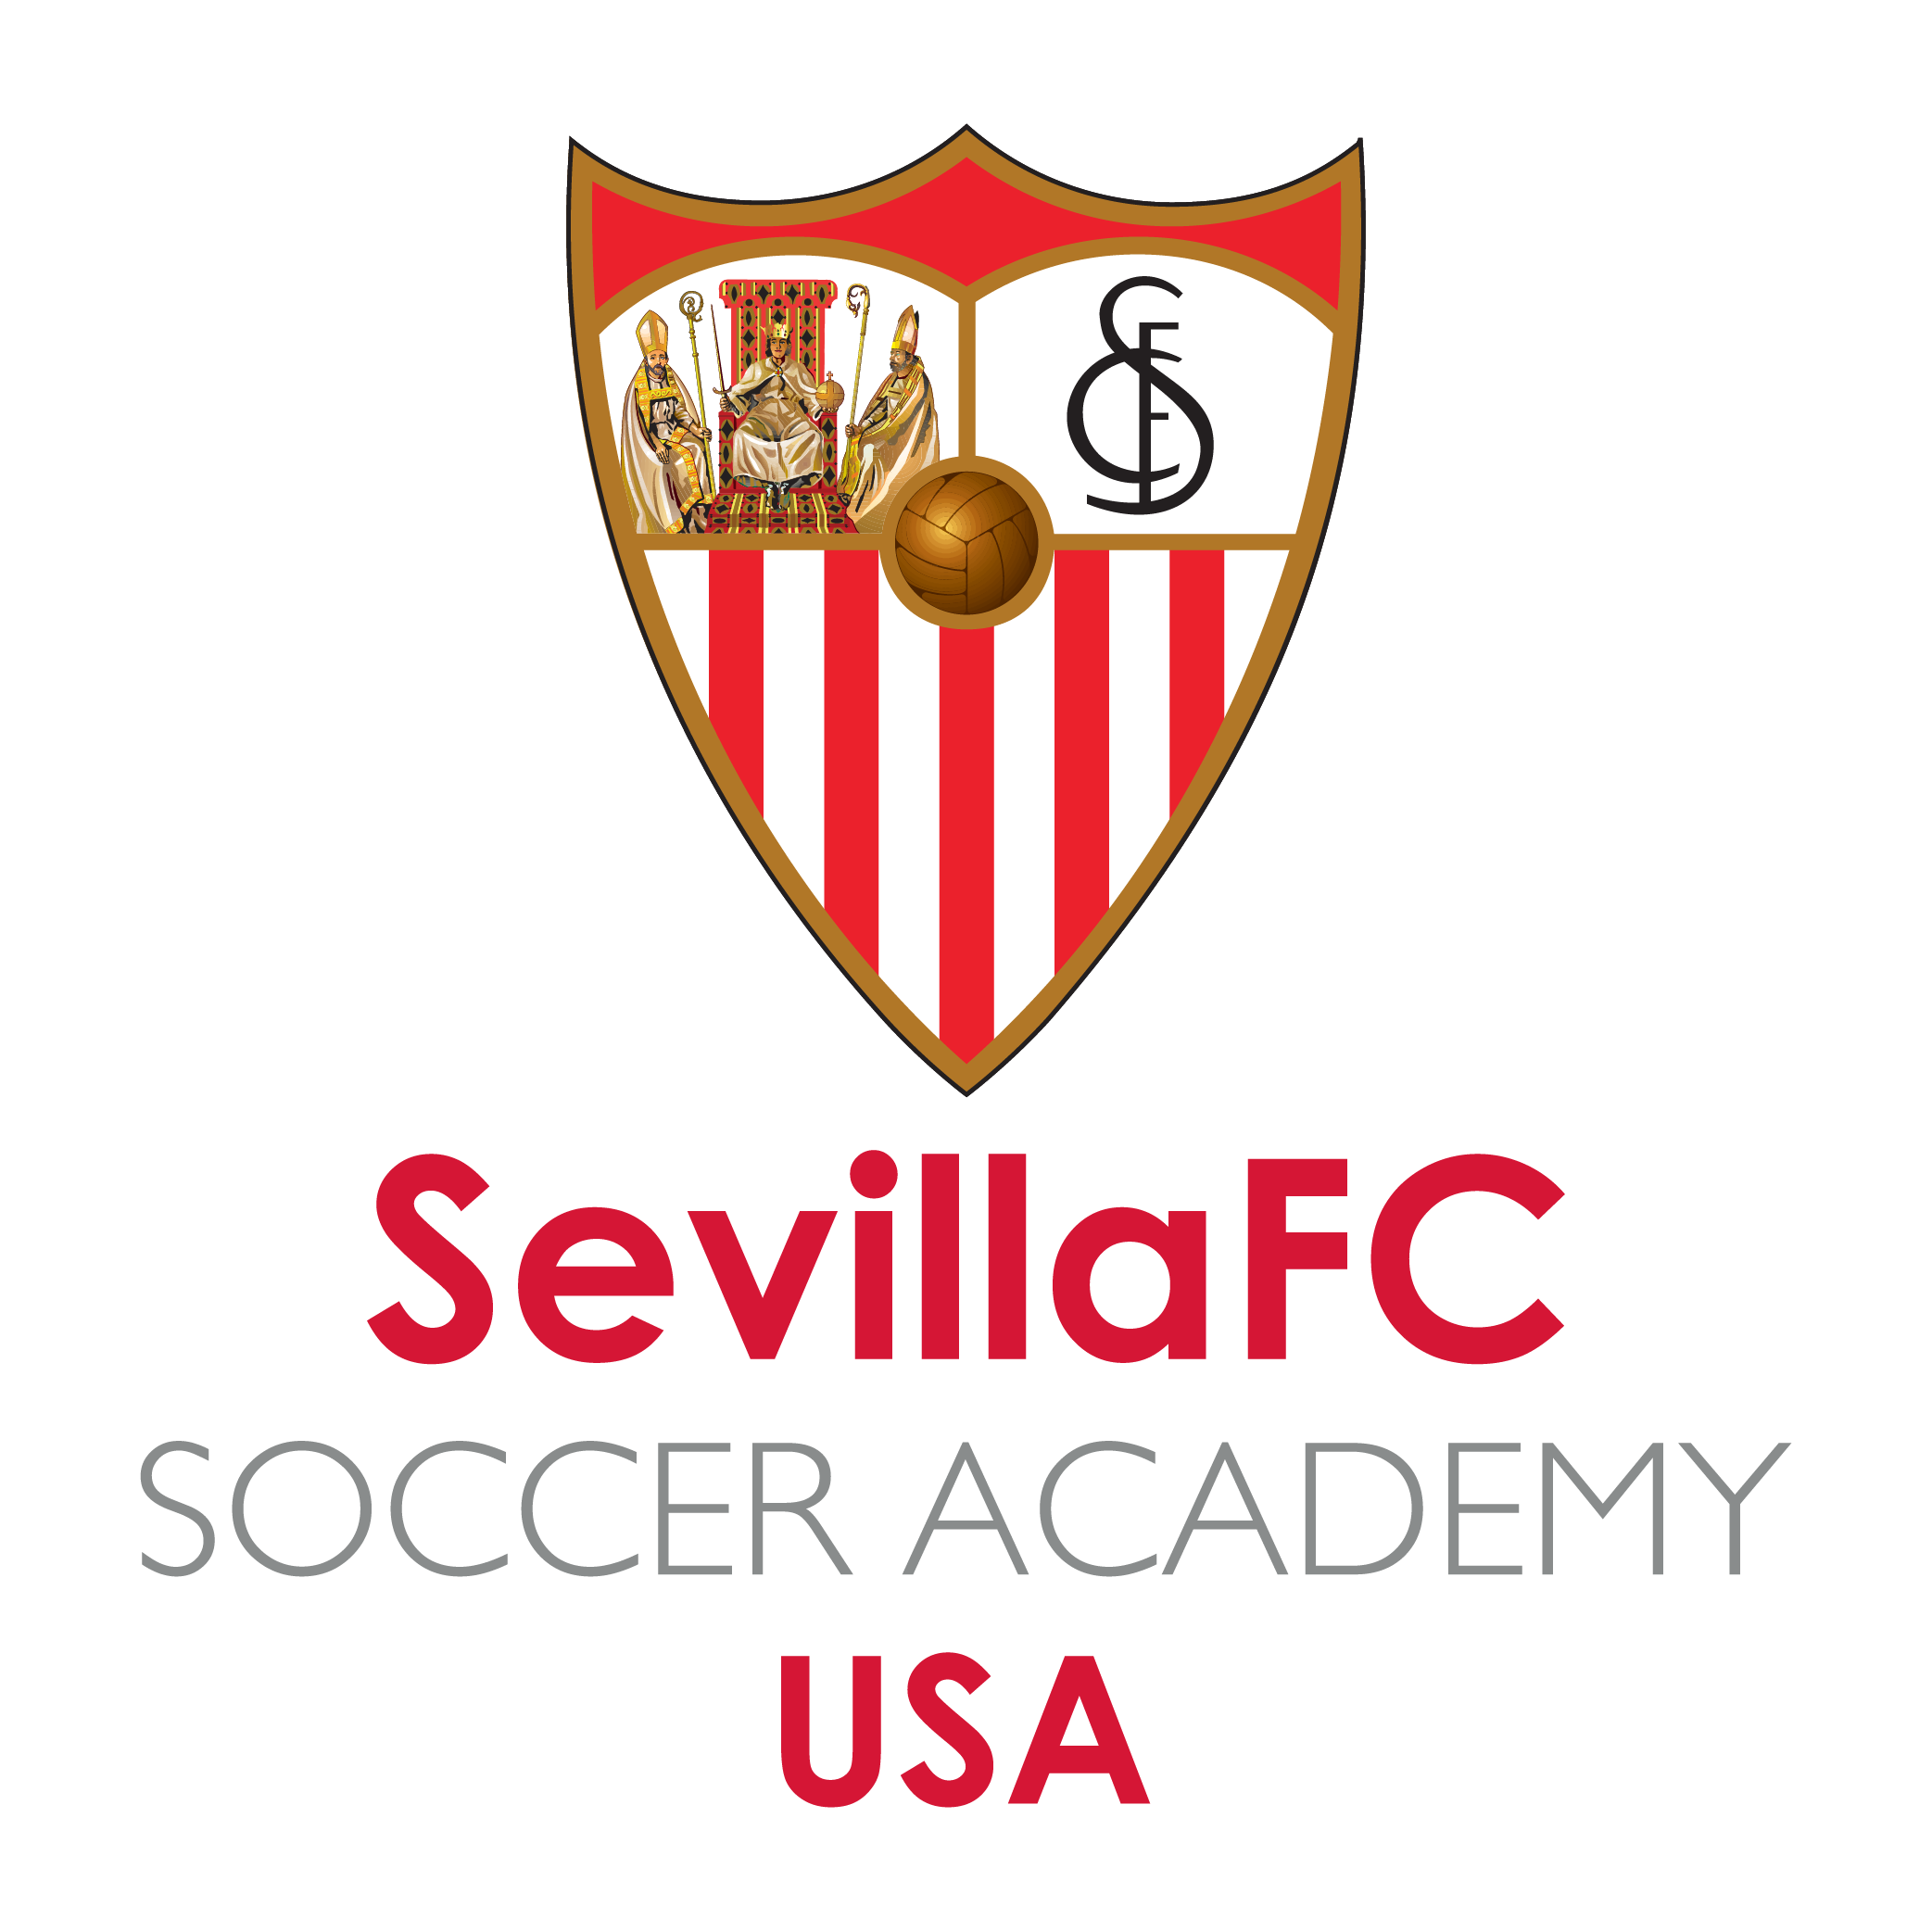 sevilla-fc-square-transparent.png